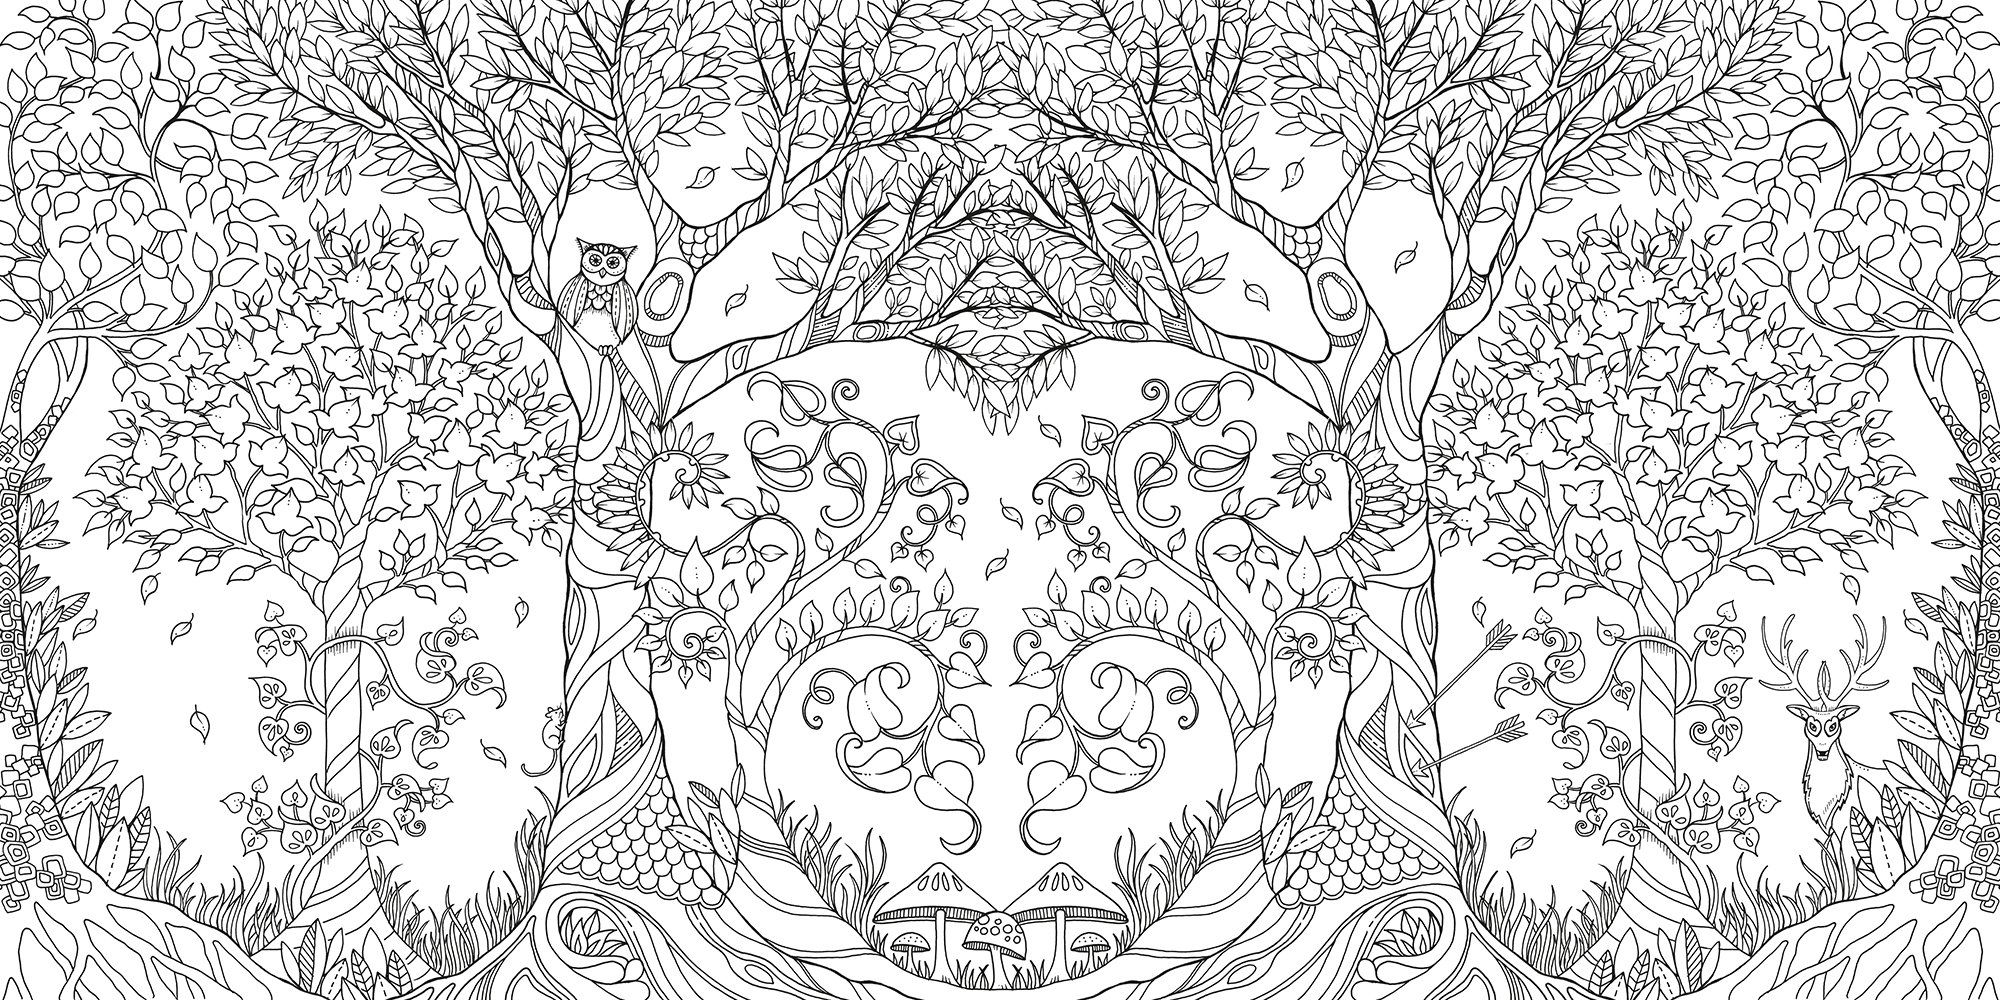 Free coloring pages garden - 17 Best Adult Coloring Pages Images On Pinterest Coloring Books Coloring Sheets And Mandalas